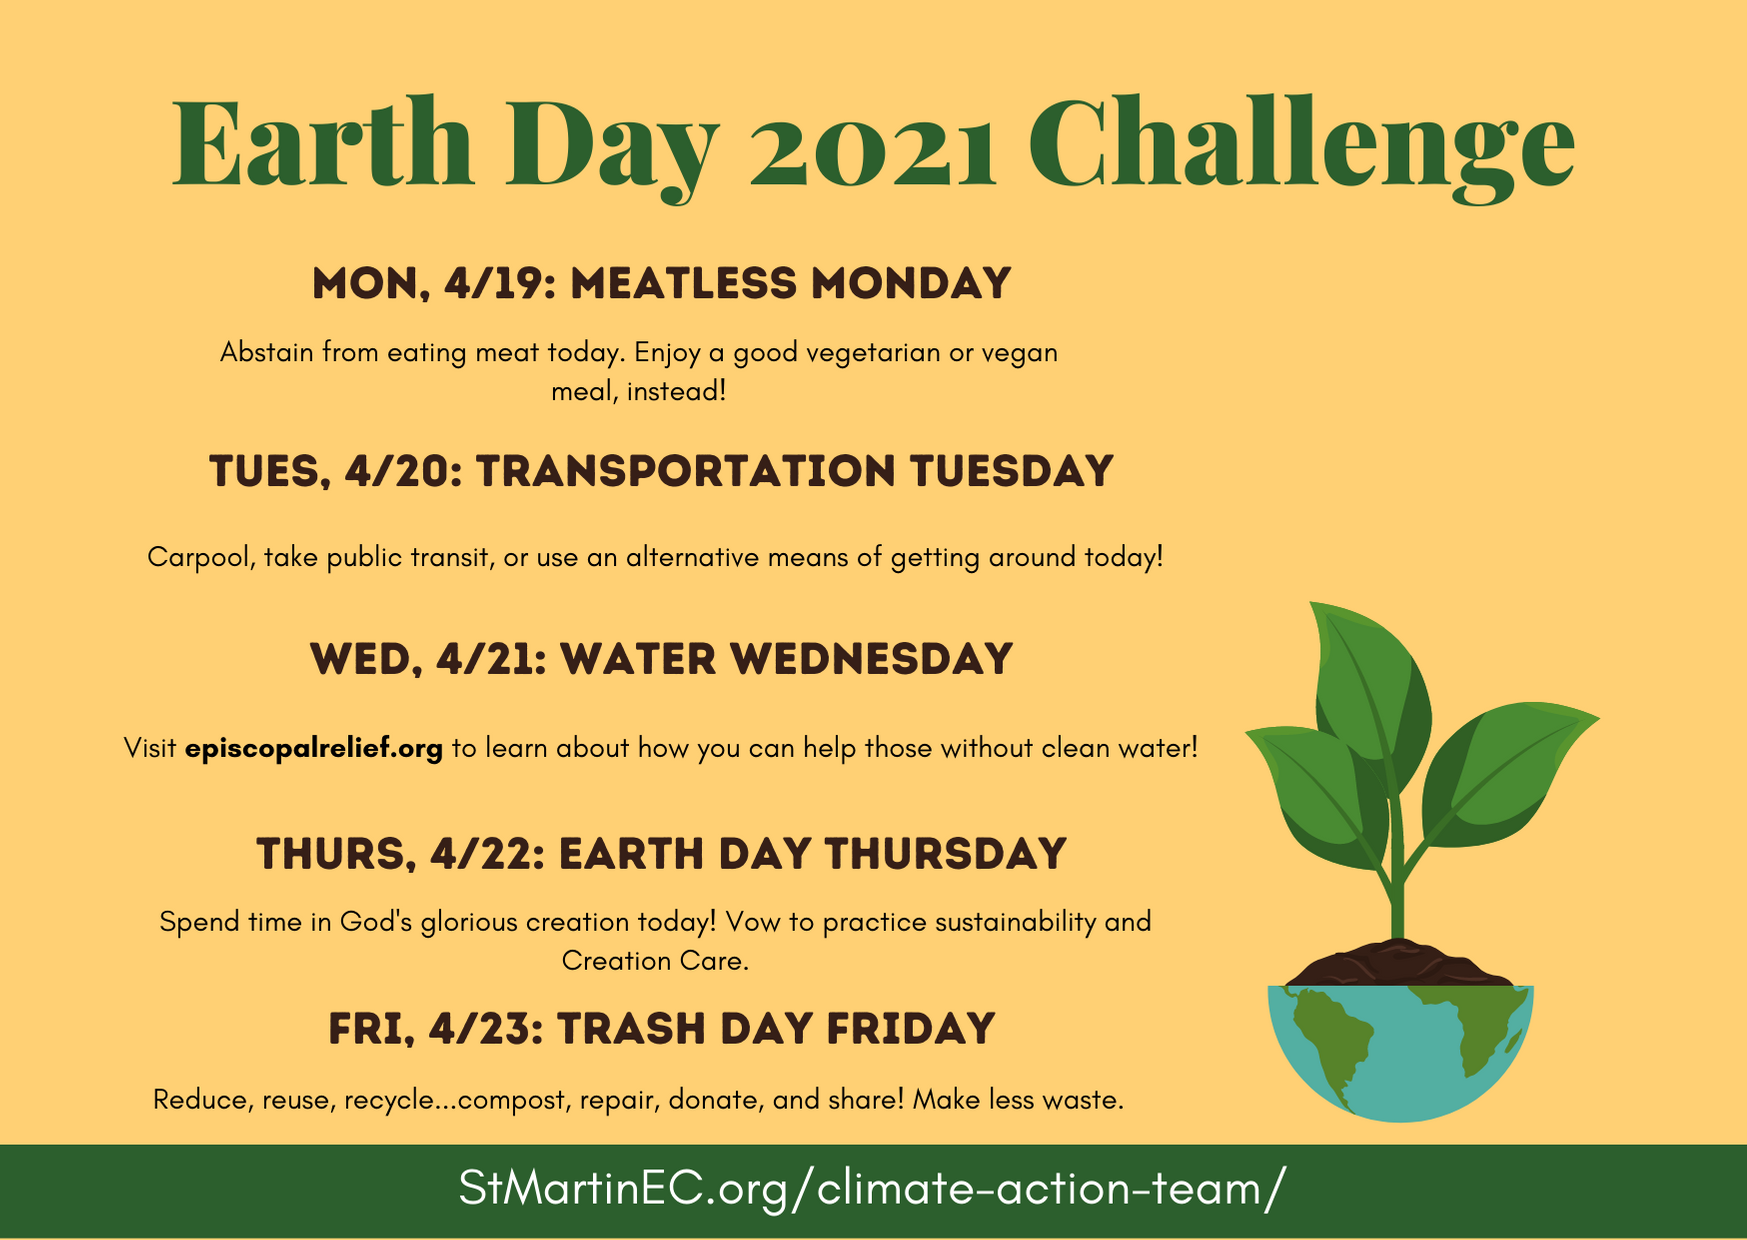 2021-earth-day-challenge-full_49